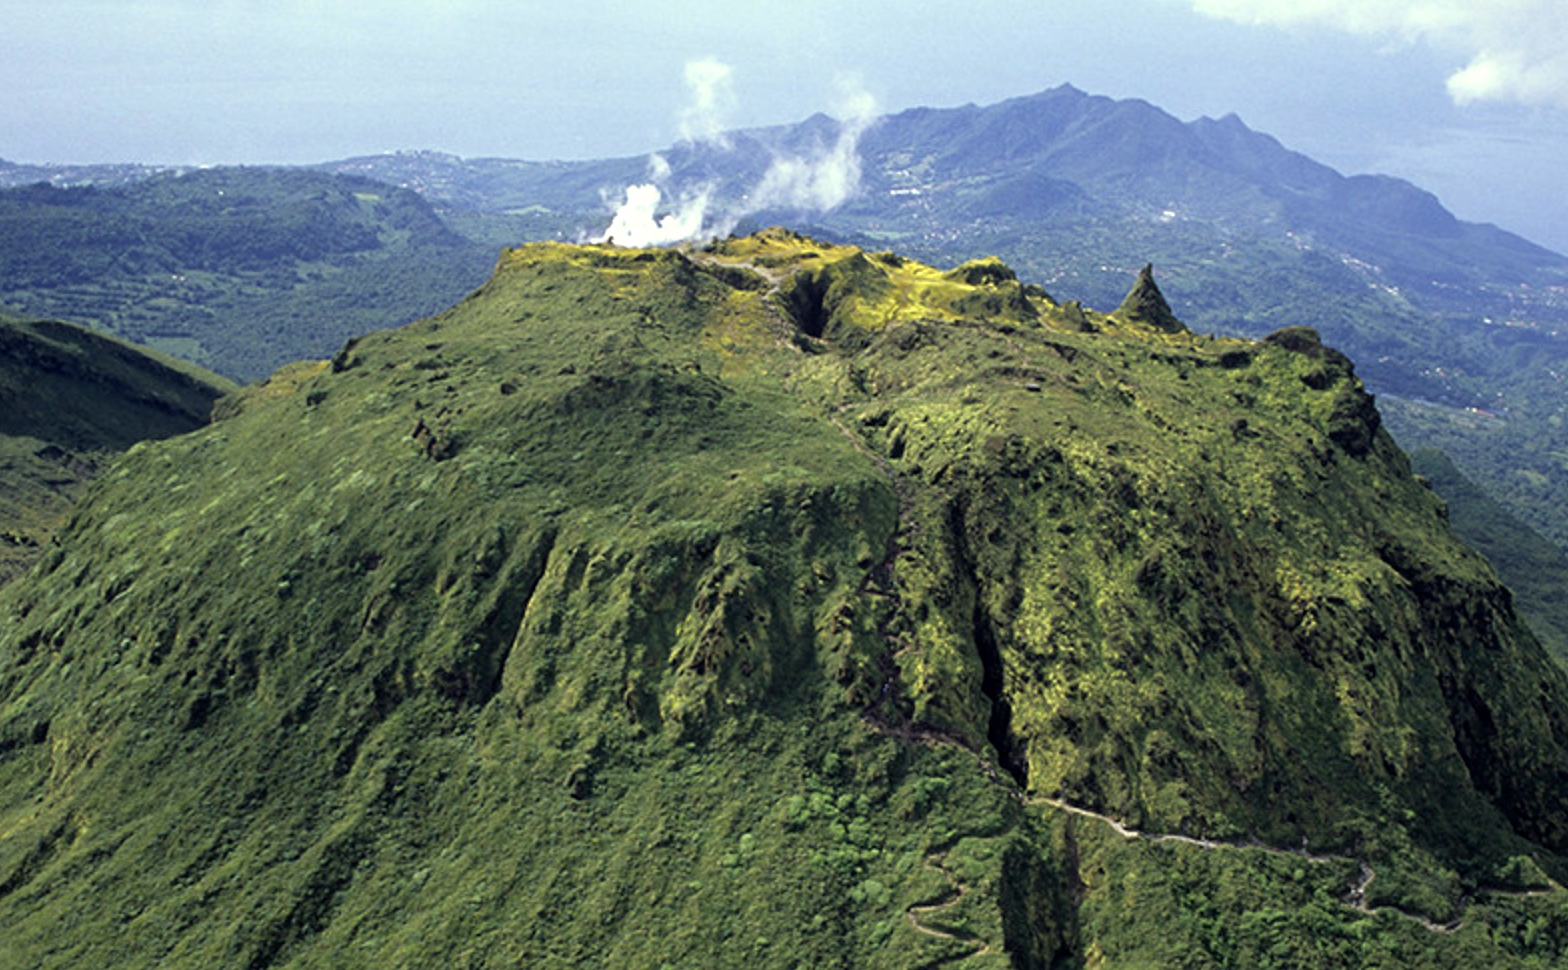 1/Hike to the top of a volcano